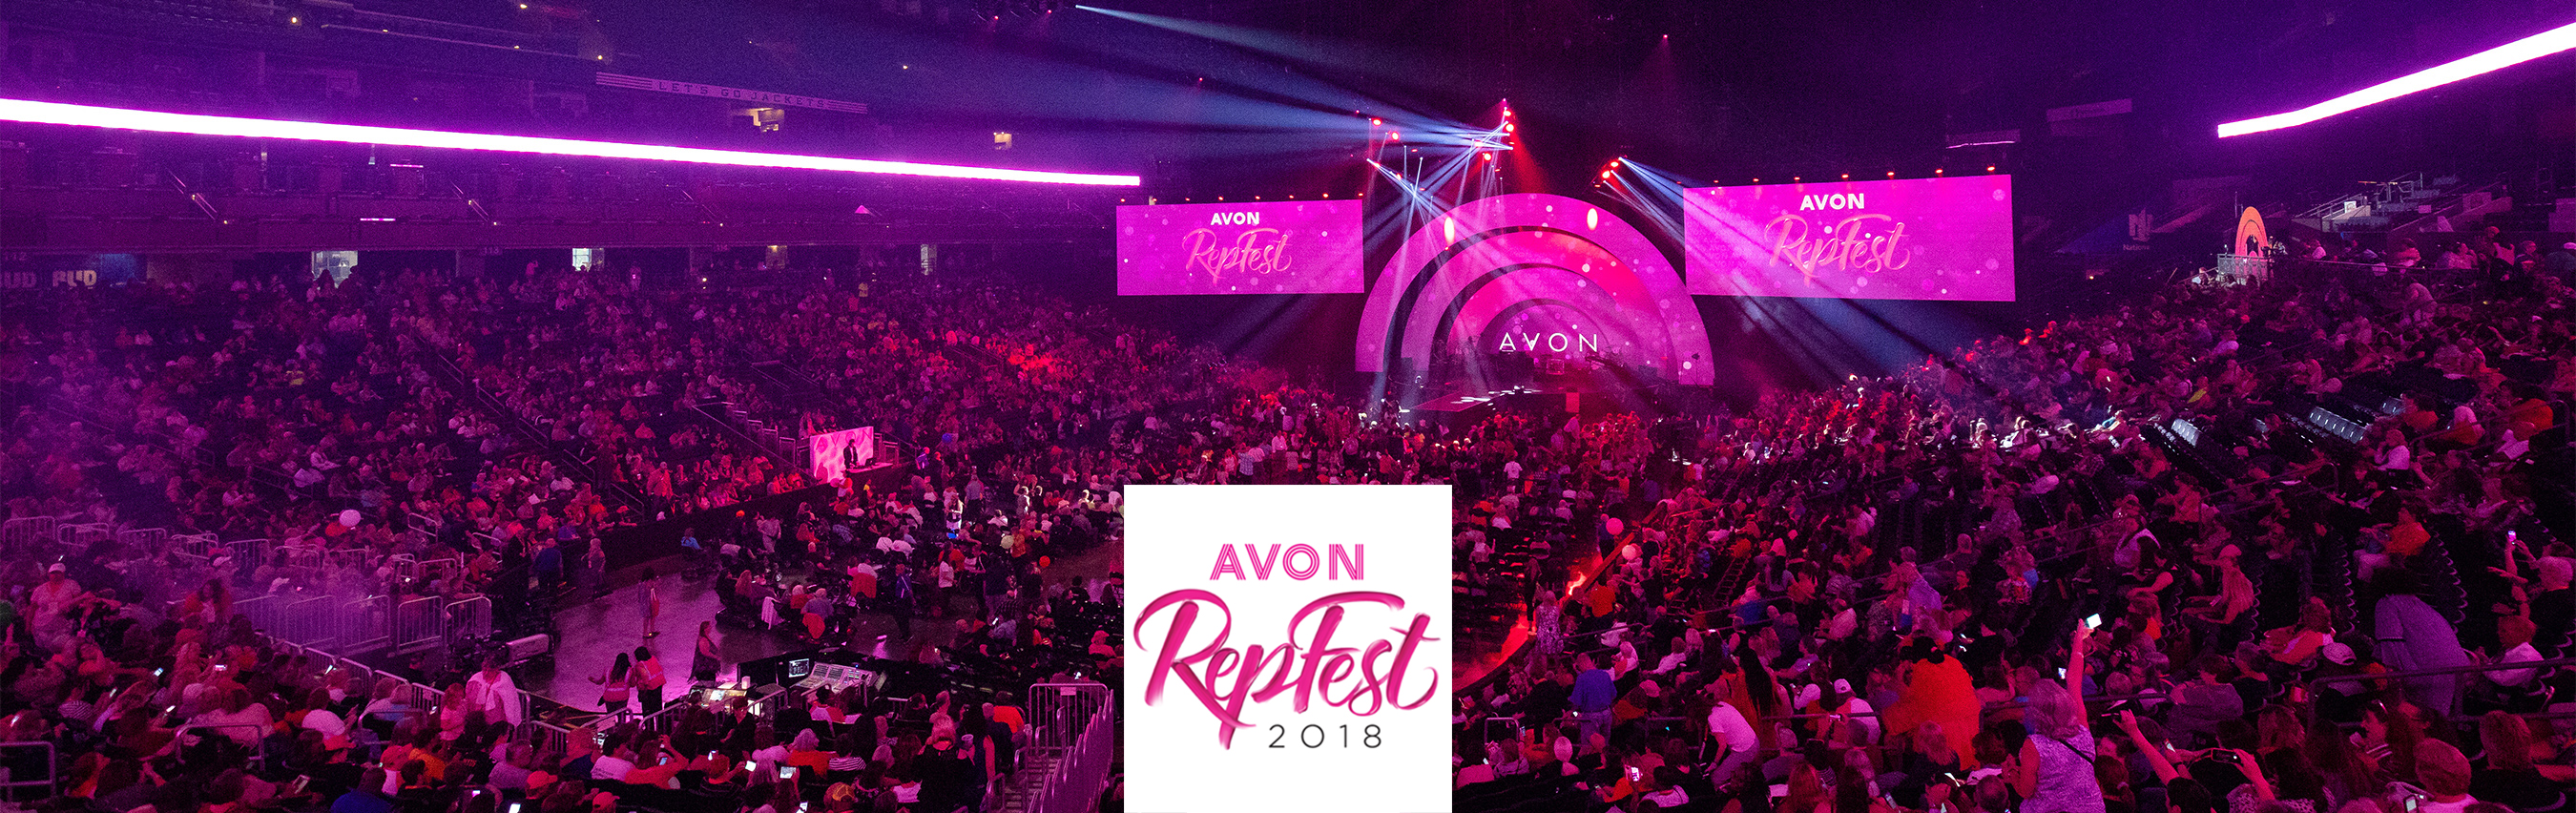 Stadium filled with people inside the Avon rep fest event